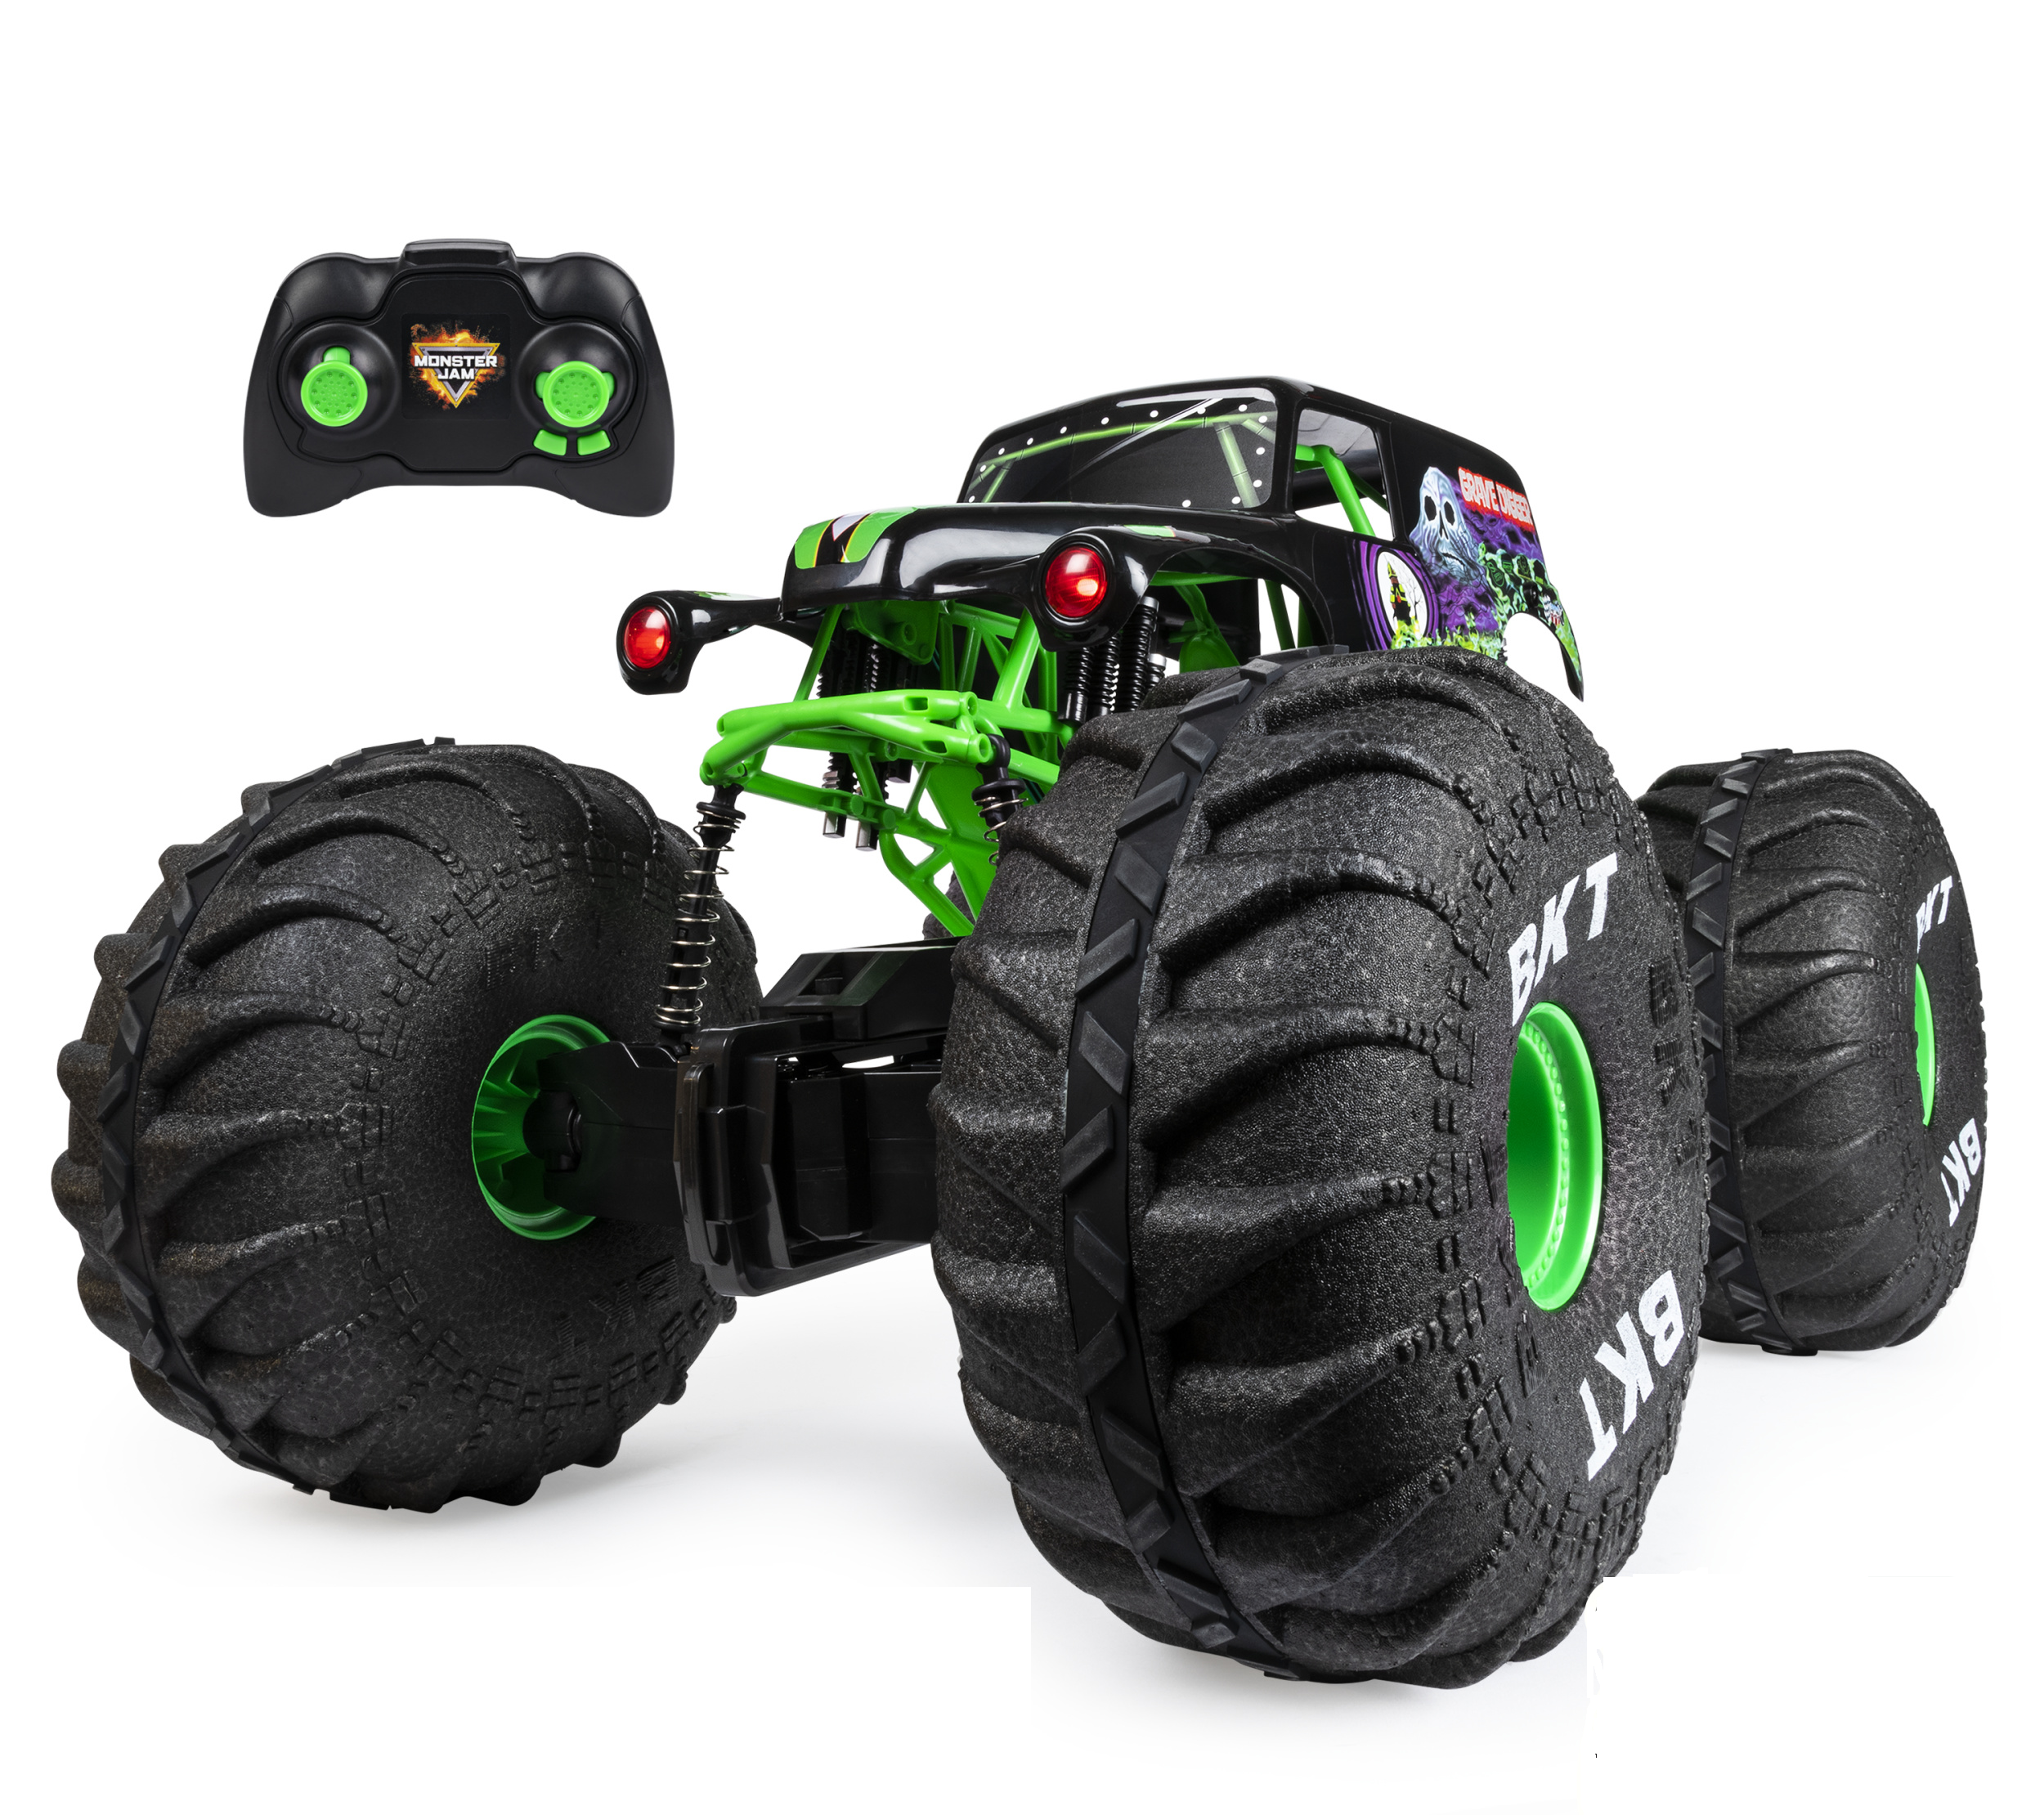 Monster Jam Official Mega Grave Digger All Terrain Remote Control Monster Truck With Lights 1 6 Scale Walmart Com Monster Jam Monster Trucks Remote Control Trucks